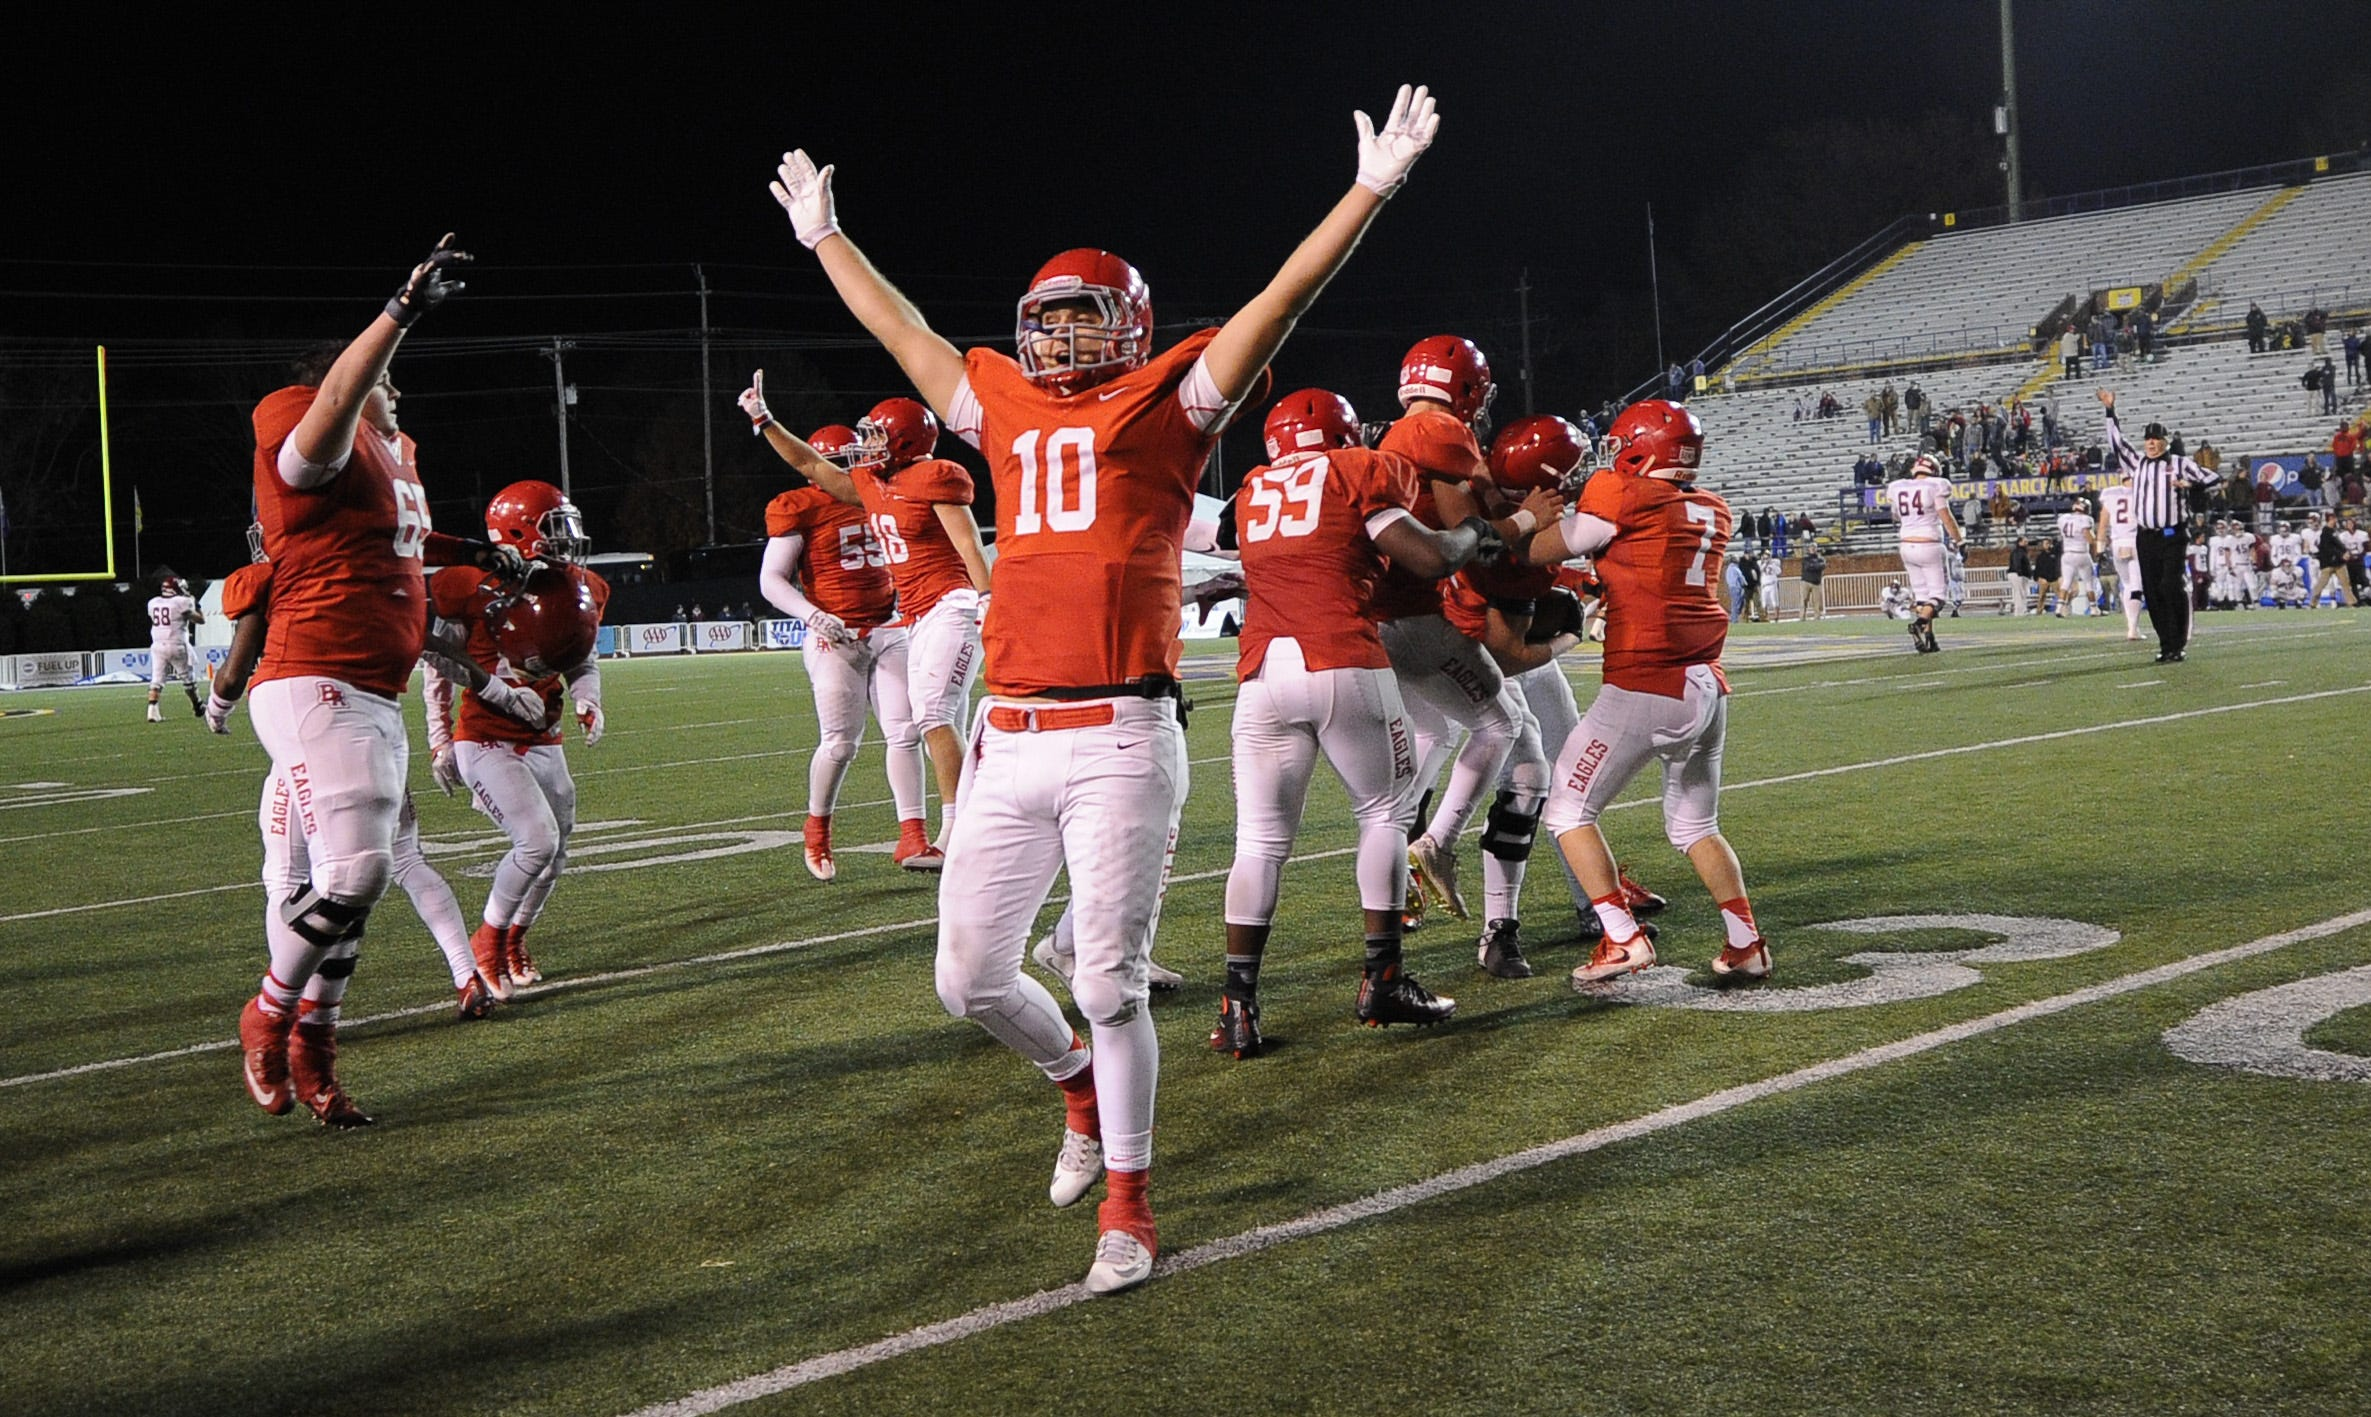 2018 Tennessee High School Football Playoff Predictions - image 9